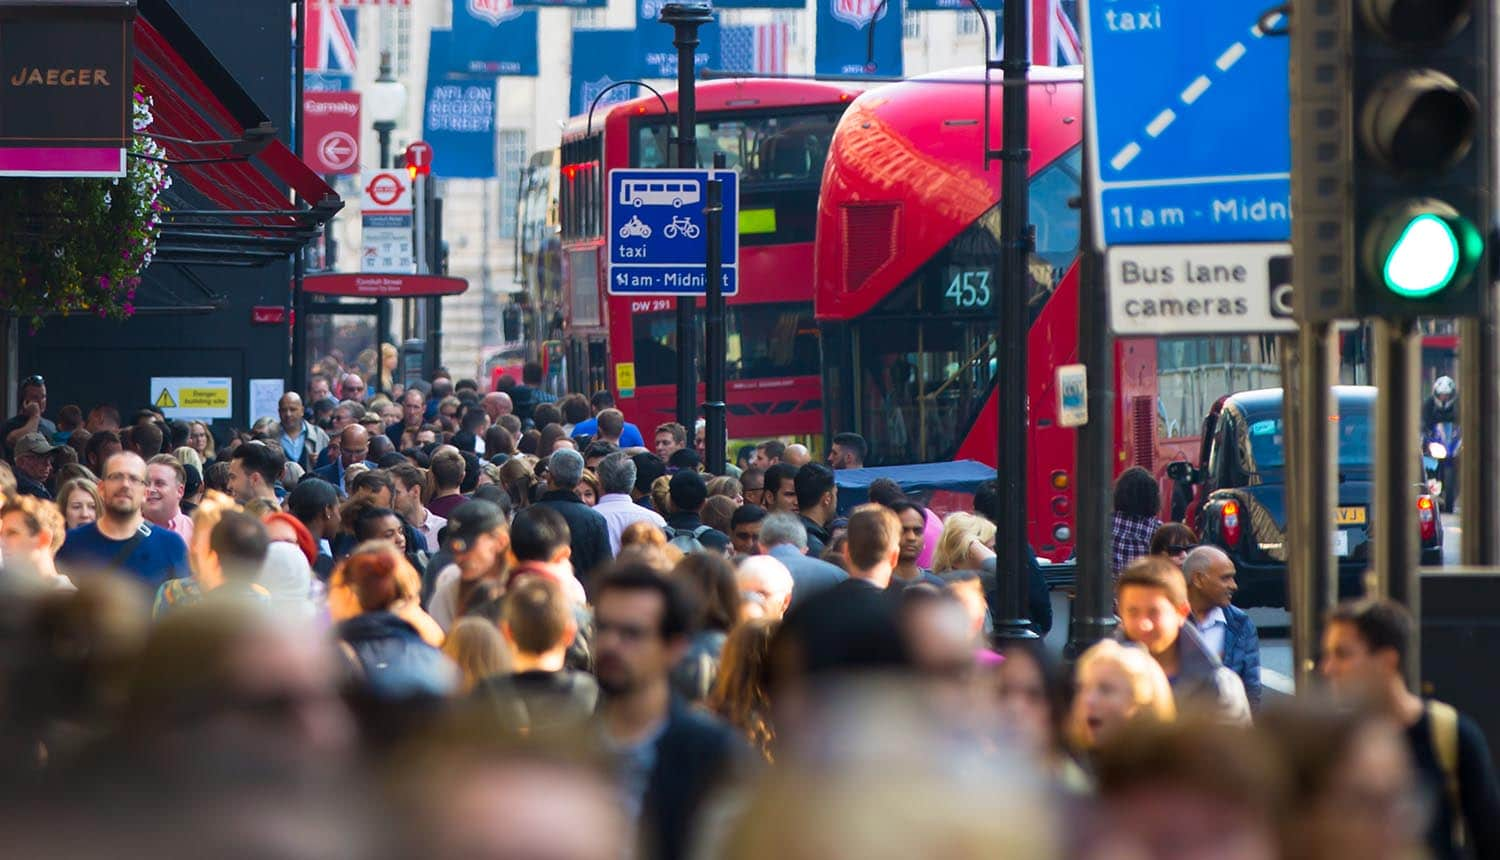 Image of crowded street with blurred faces signifying how data anonymization and pseudonymization should work under the EU GDPR